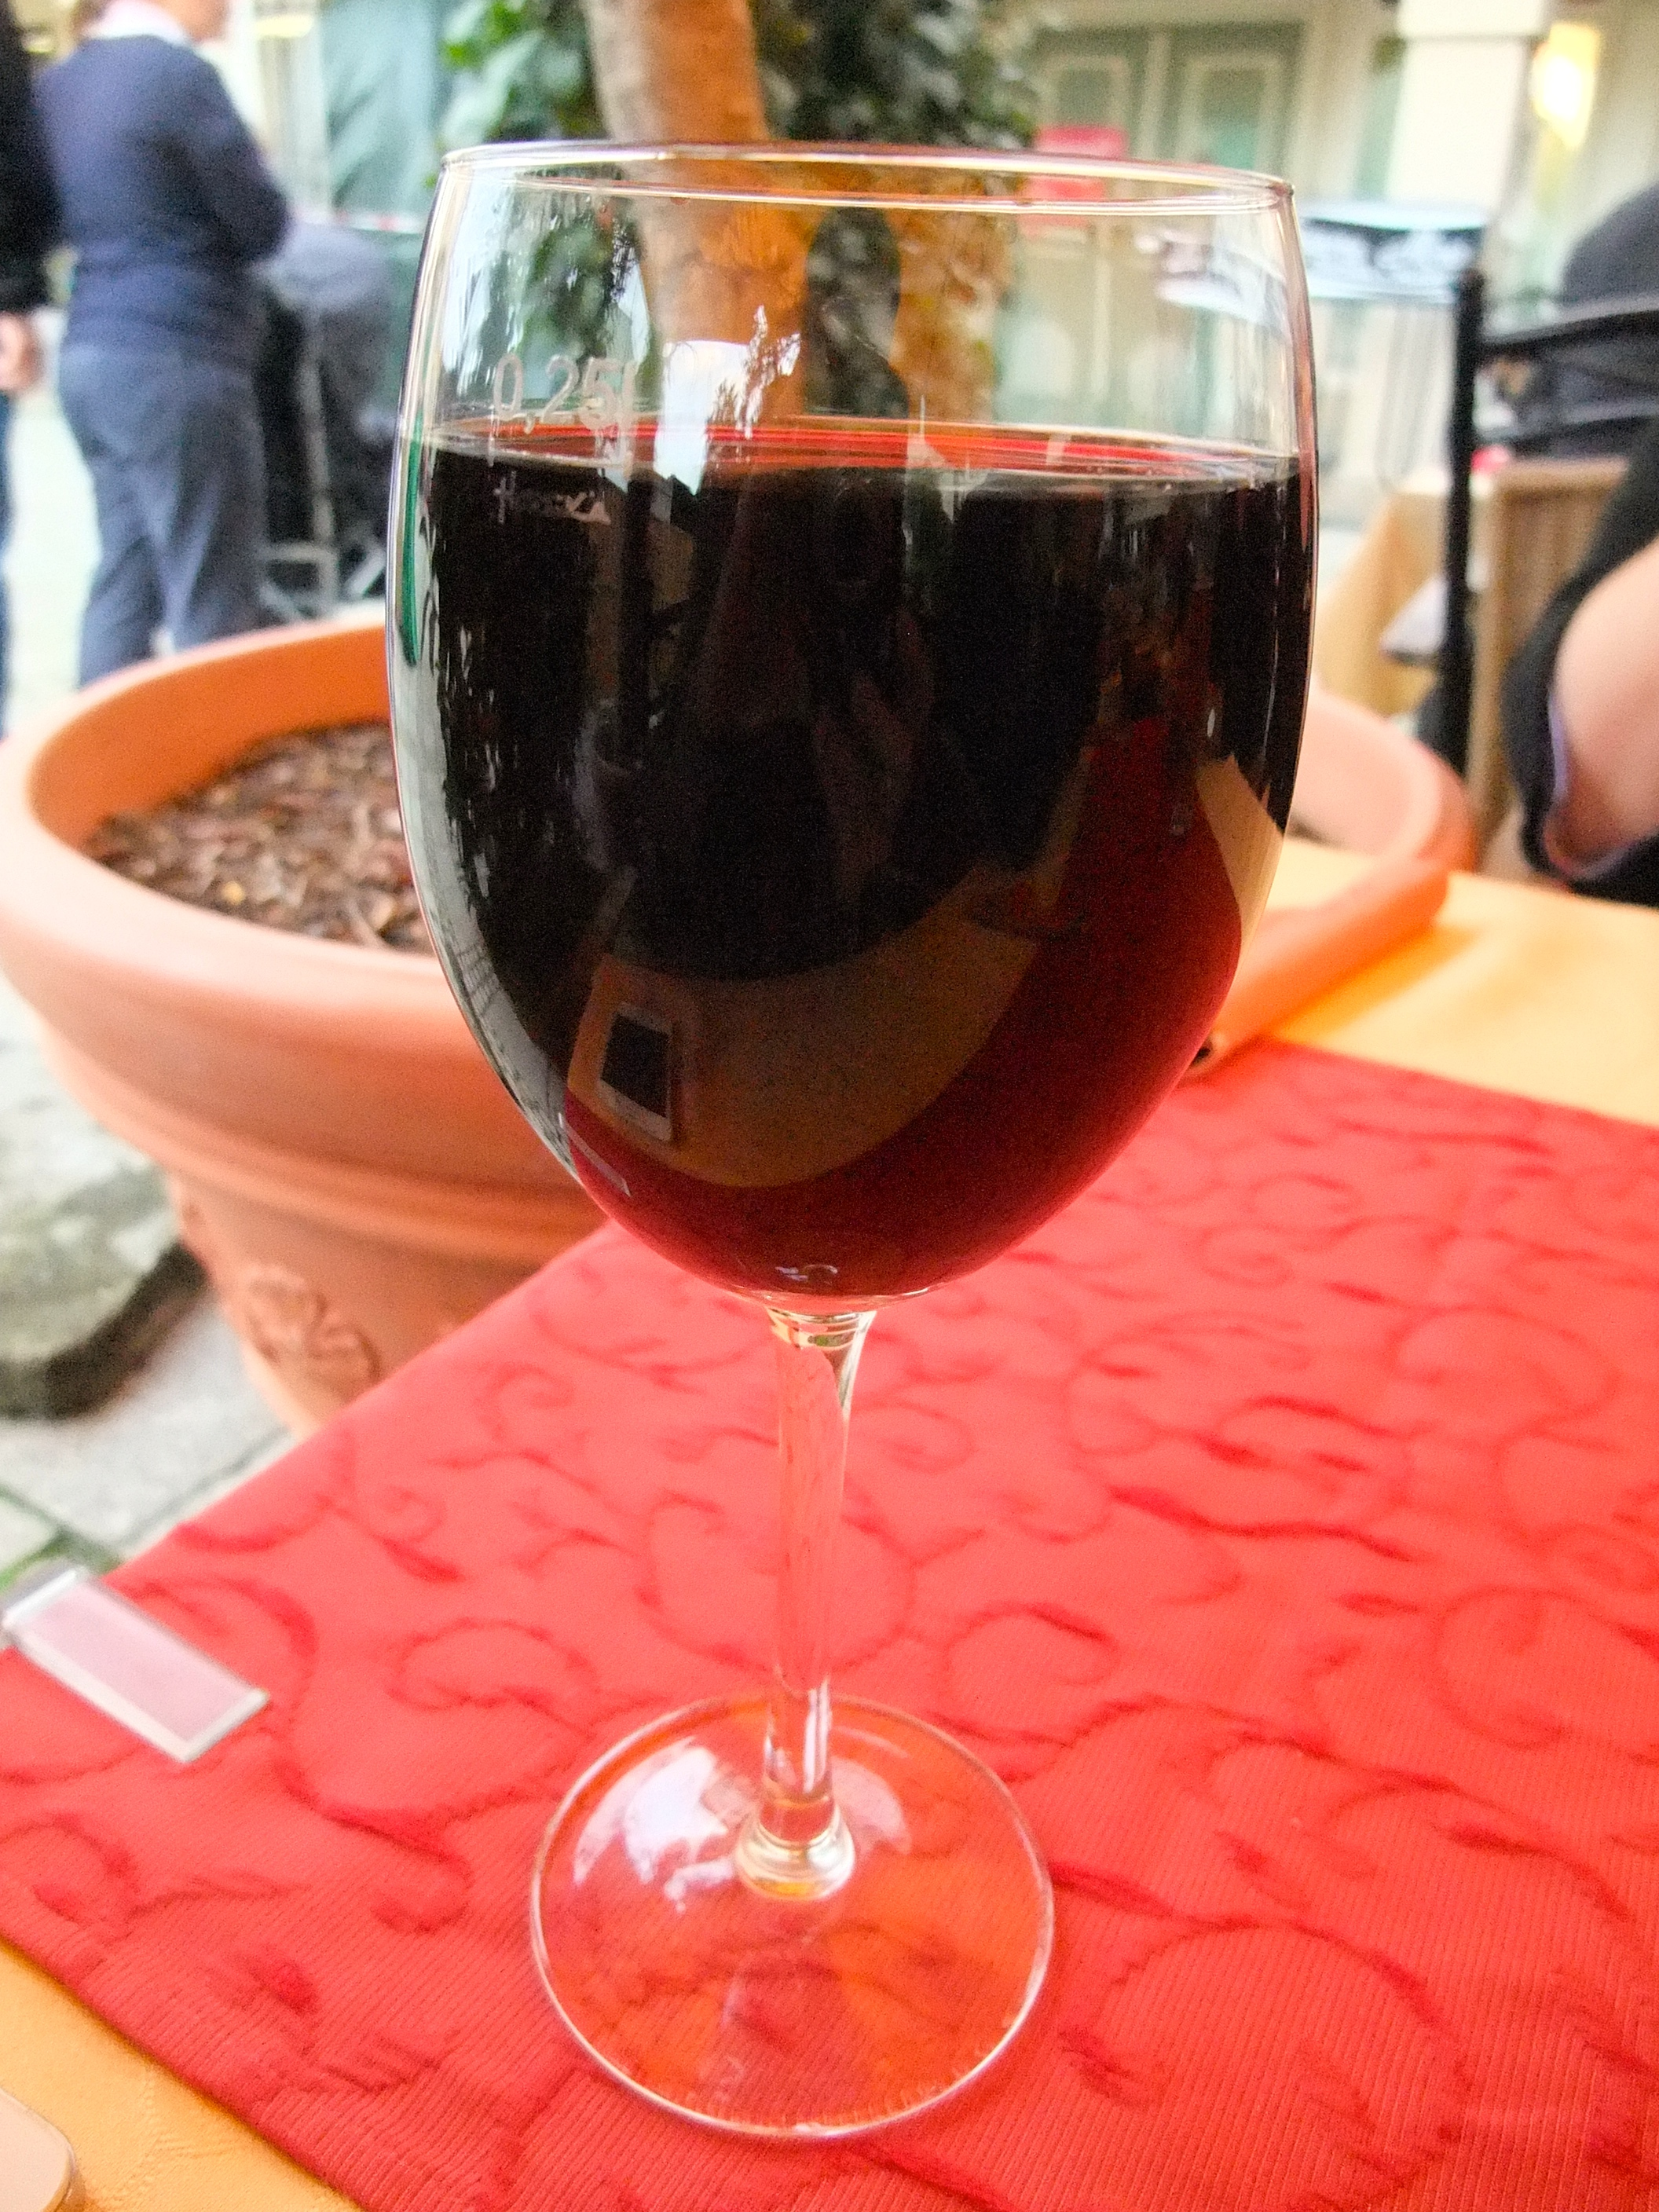 My huge glass (0,25L) of chianti